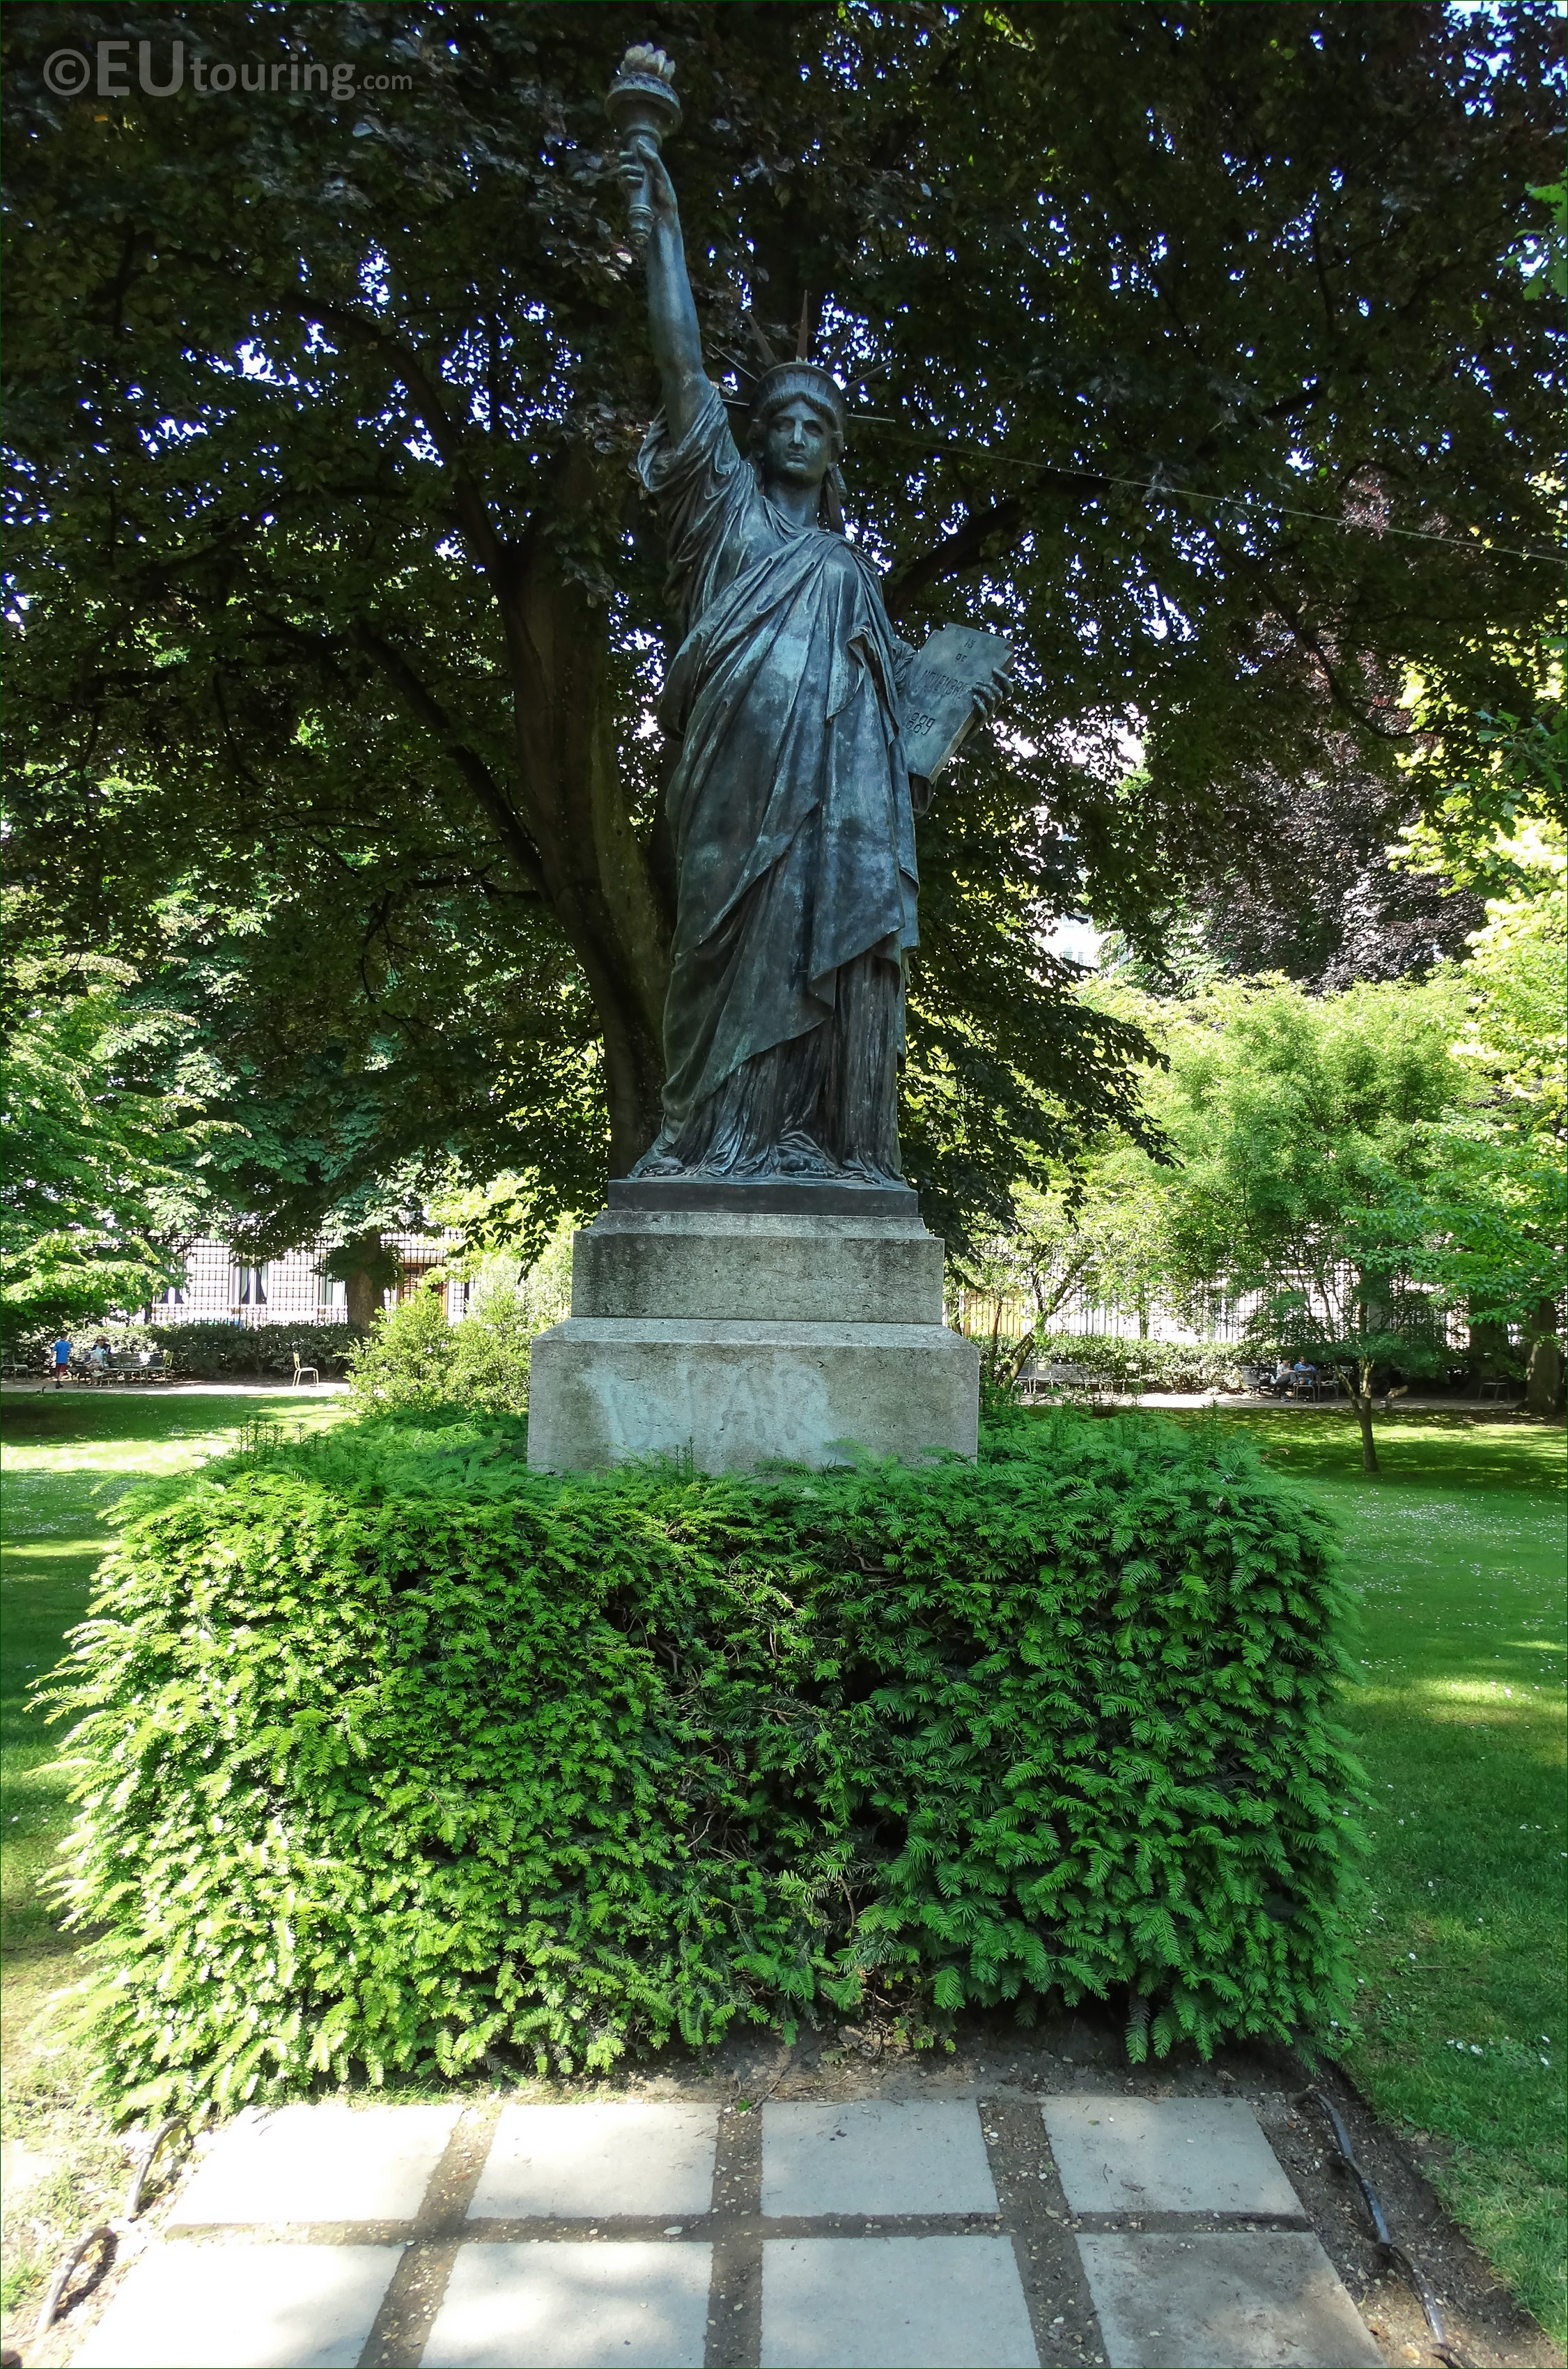 Photos of statue of liberty in luxembourg gardens paris for Definition du jardin